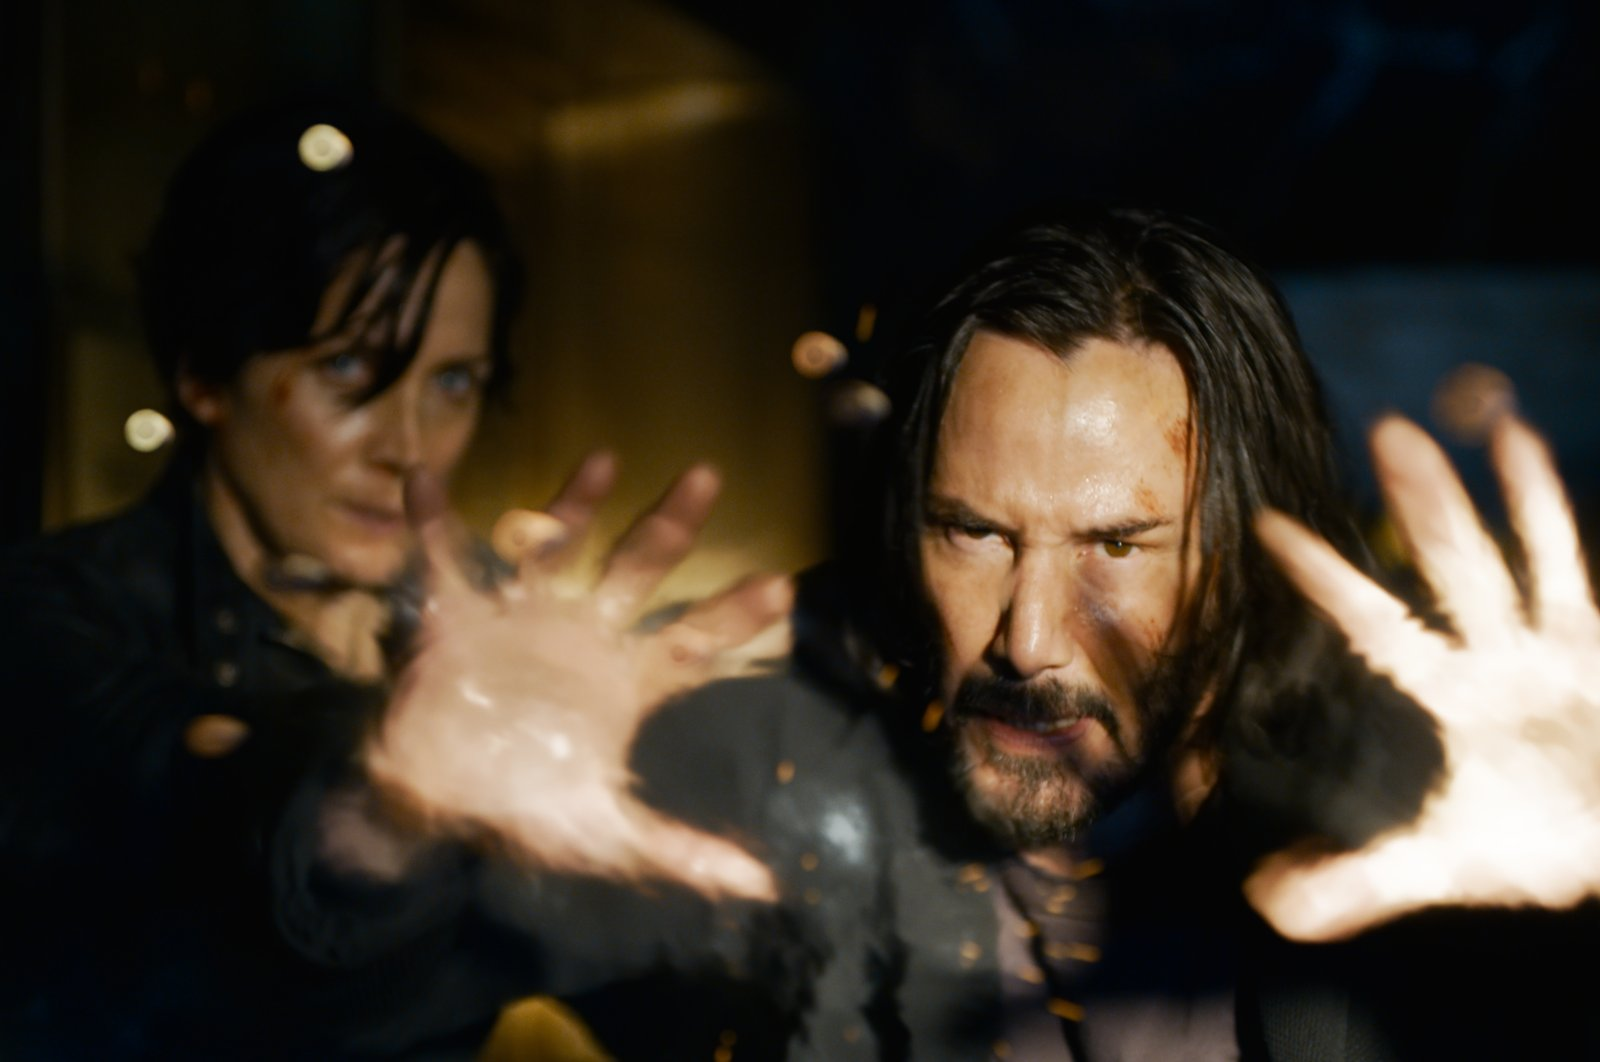 """Carrie-Anne Moss returns as Trinity and Keanu Reeves as Neo in the """"The Matrix Resurrections"""" arriving 20 years after """"The Matrix"""" trilogy concluded. (dpa Photo)"""